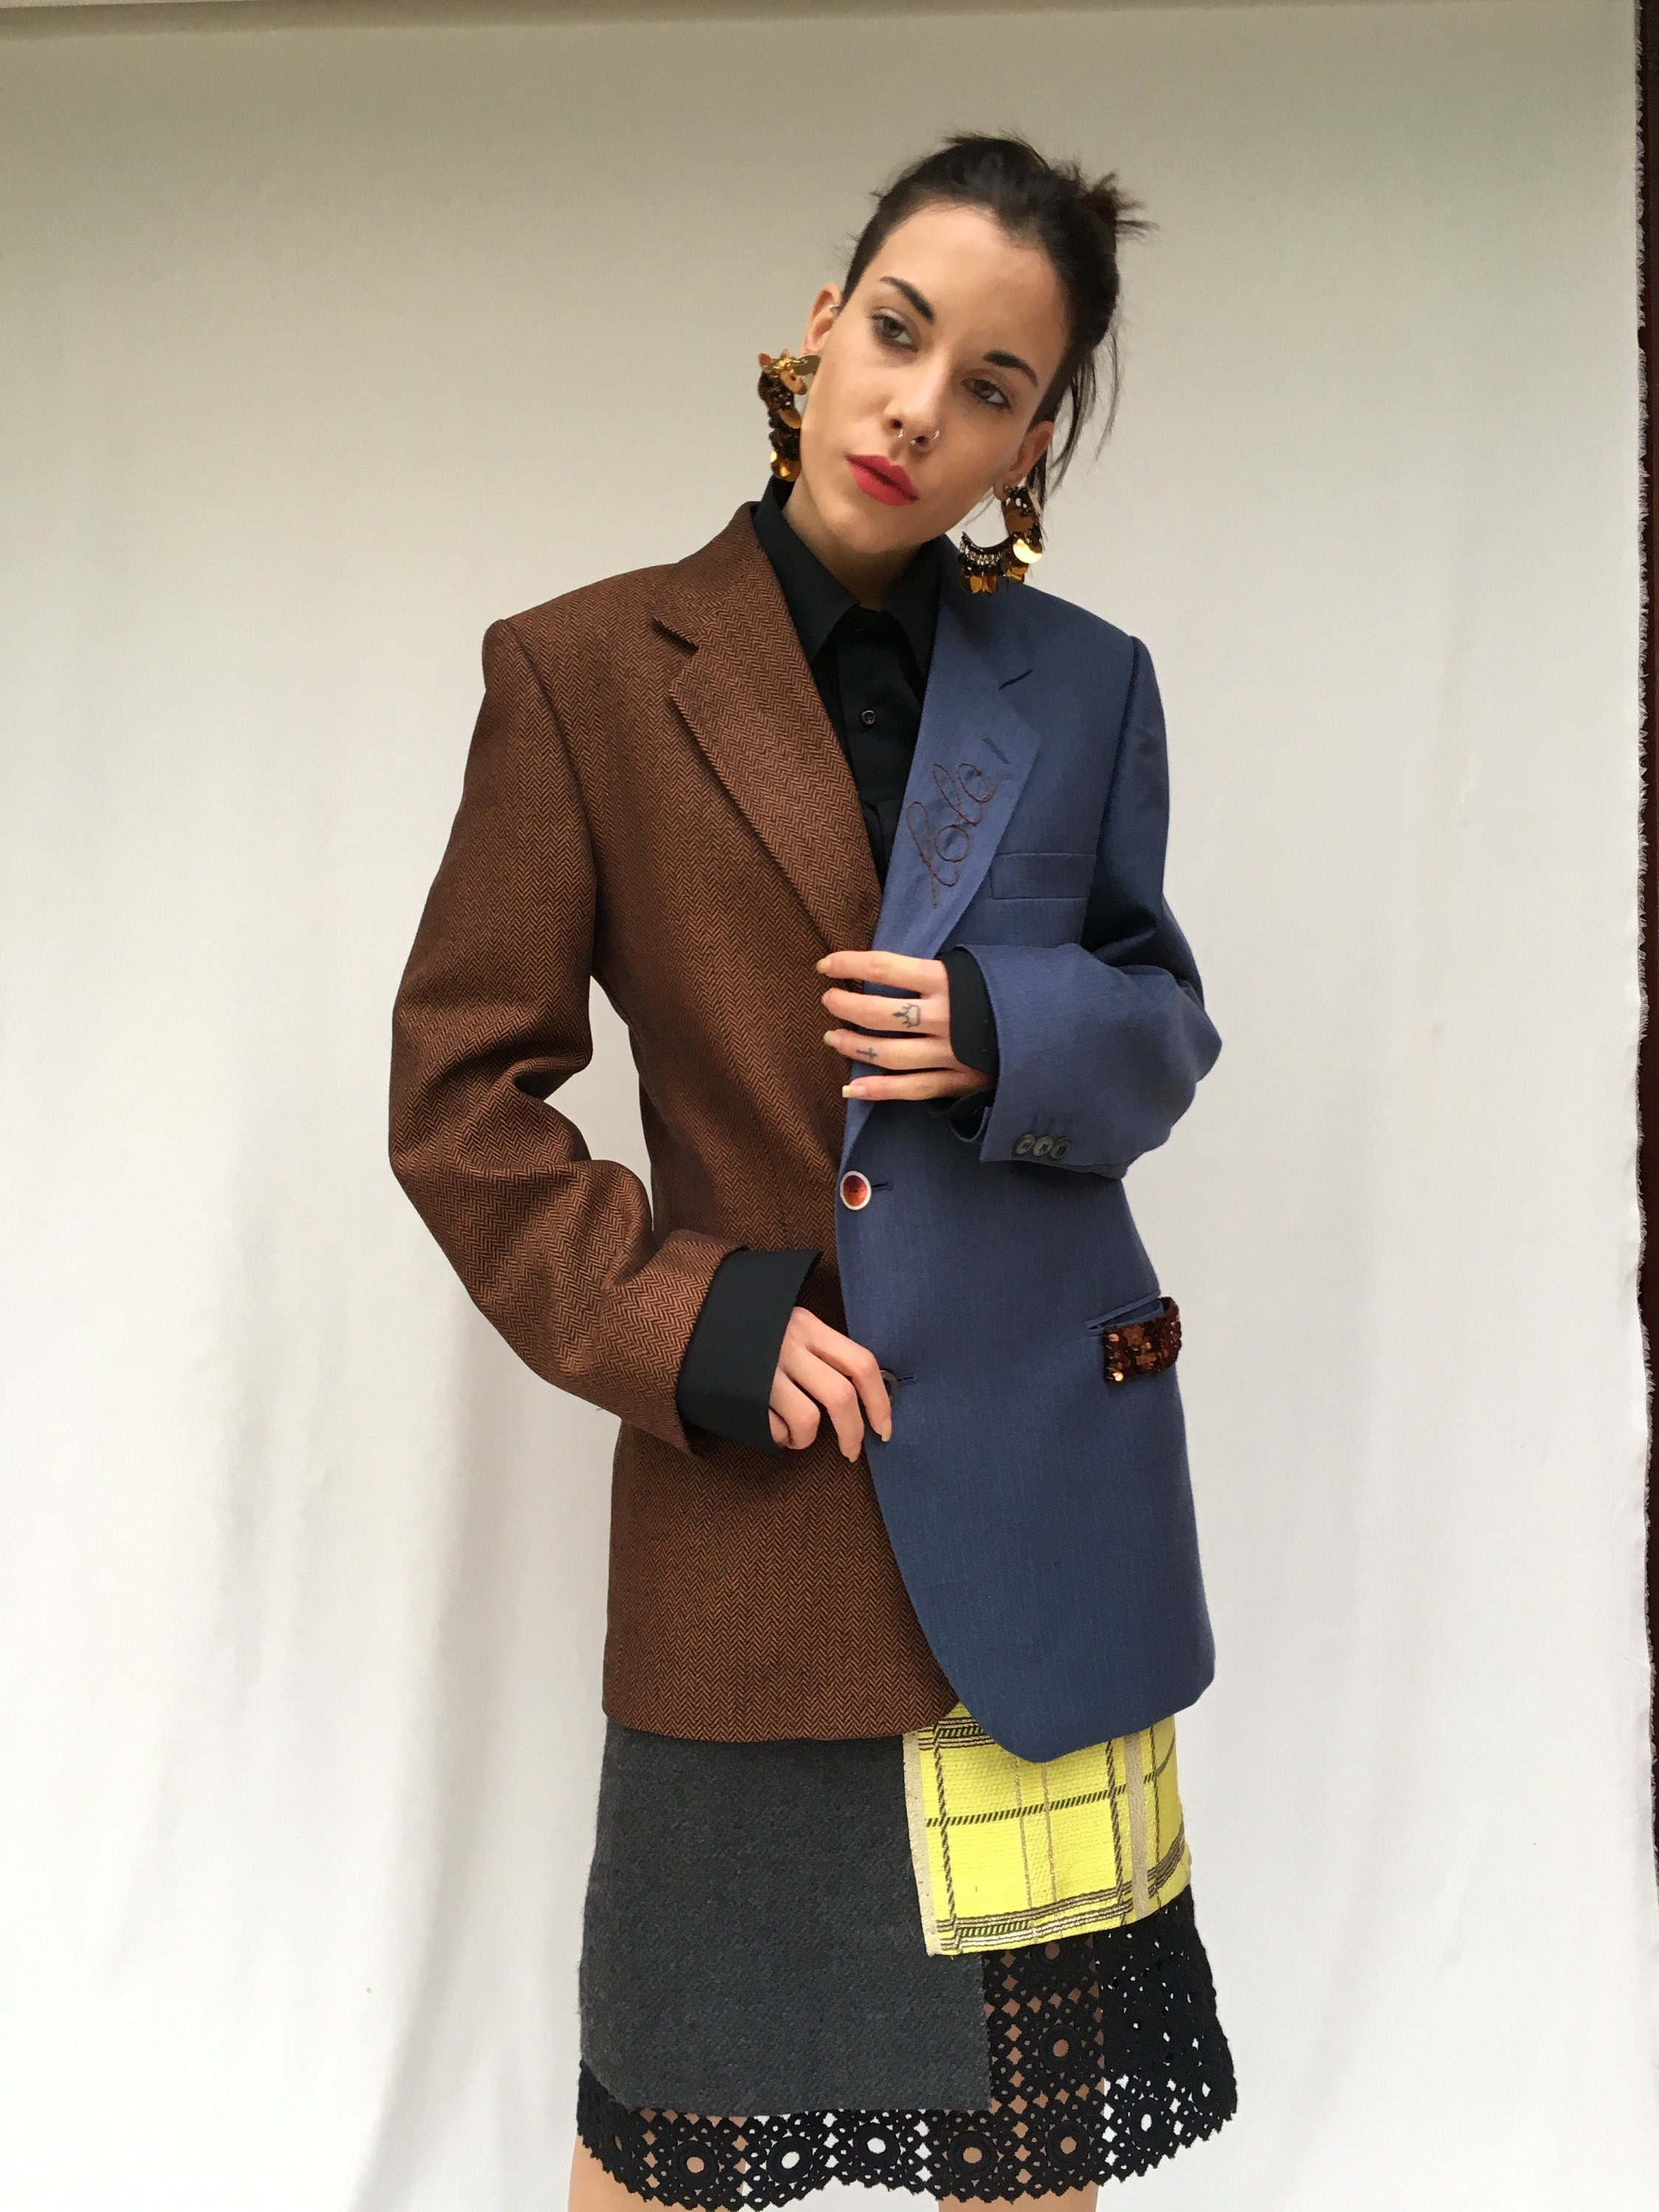 deconstructed skirt and jacket from selected vintage items. sustainability in the creative recovery of high quality waste clothing